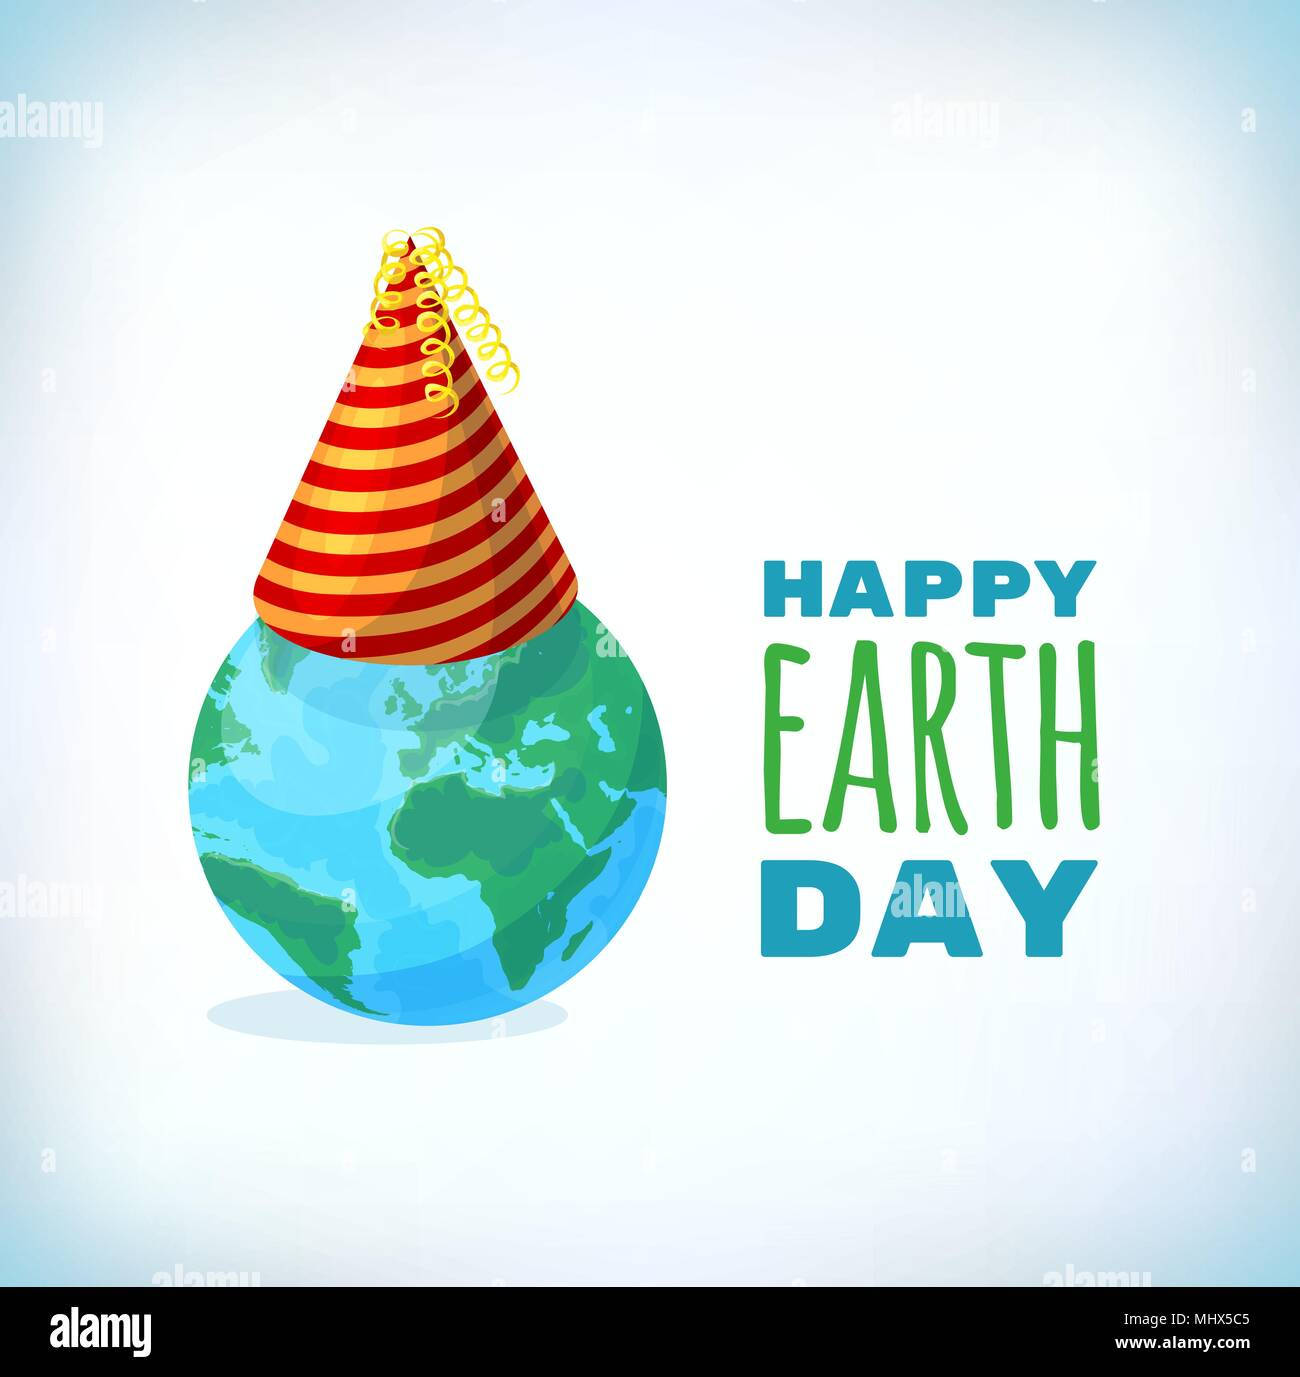 Happy Earth Day card, background. Vector illustration for banner and poster. Element for design cards and invtions. Symbol for gift cards and flyers. Emblem for brochures - Stock Image